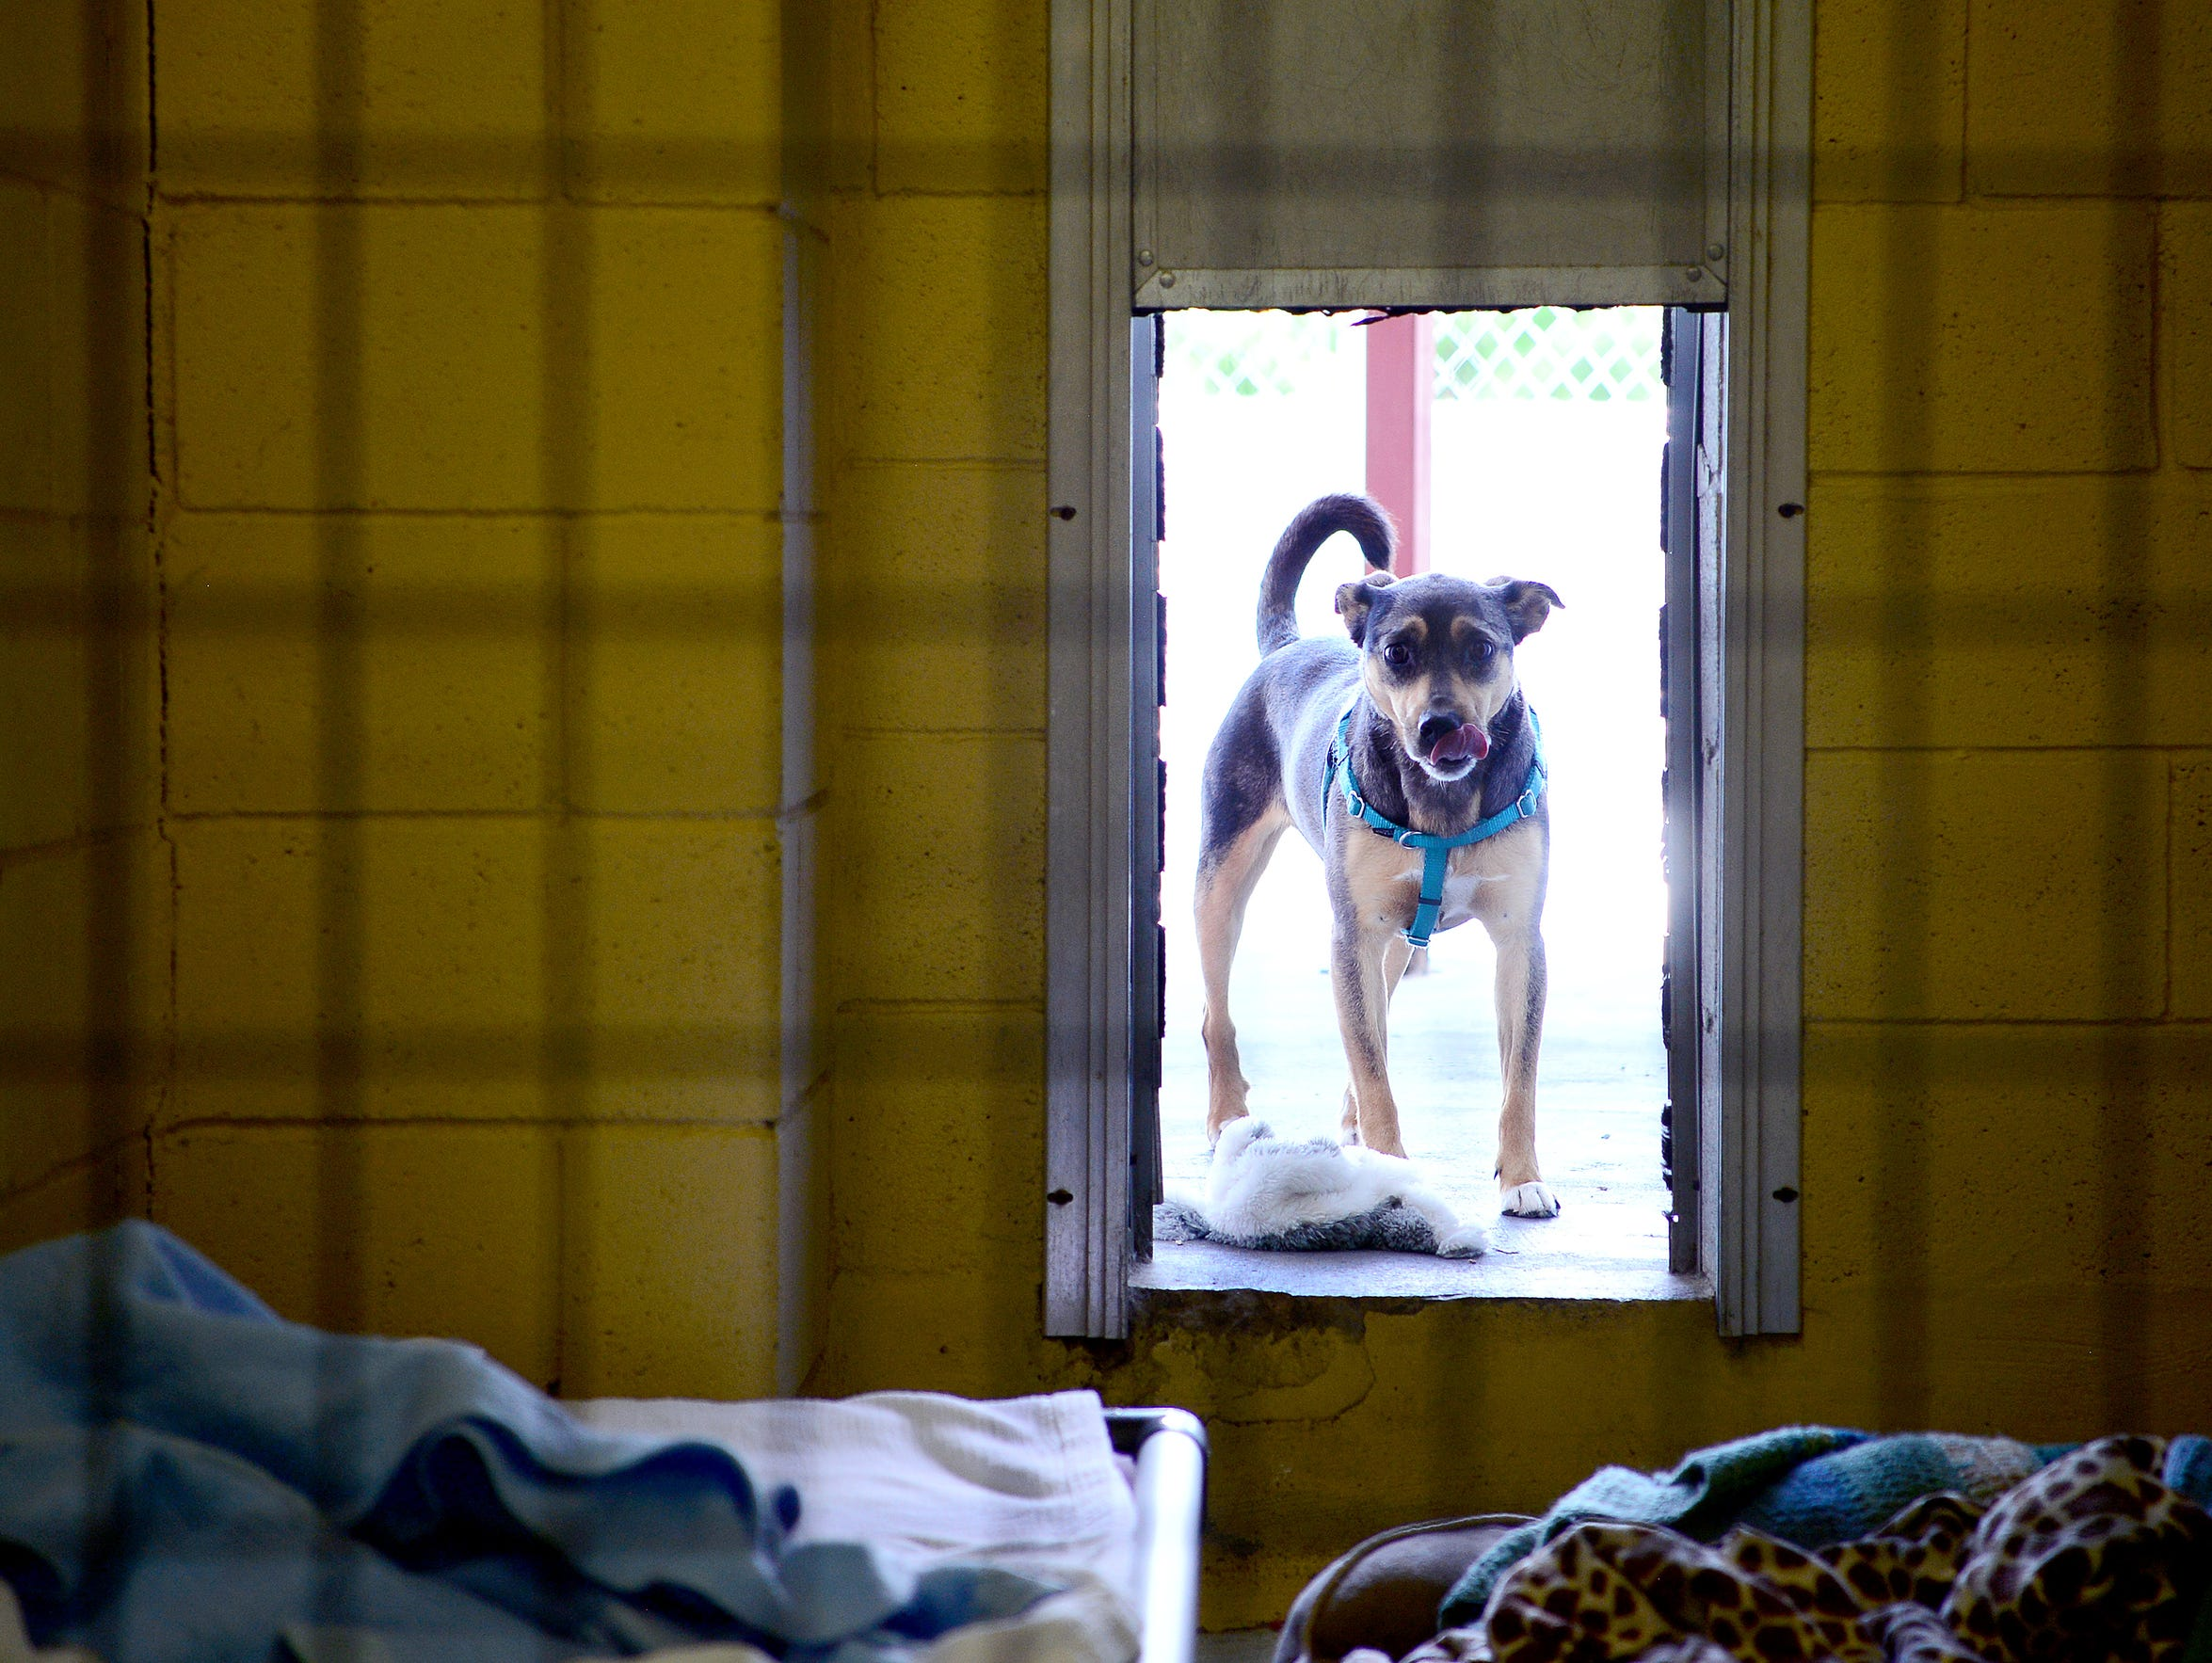 Pockets, a dog available for adoption, peers into a